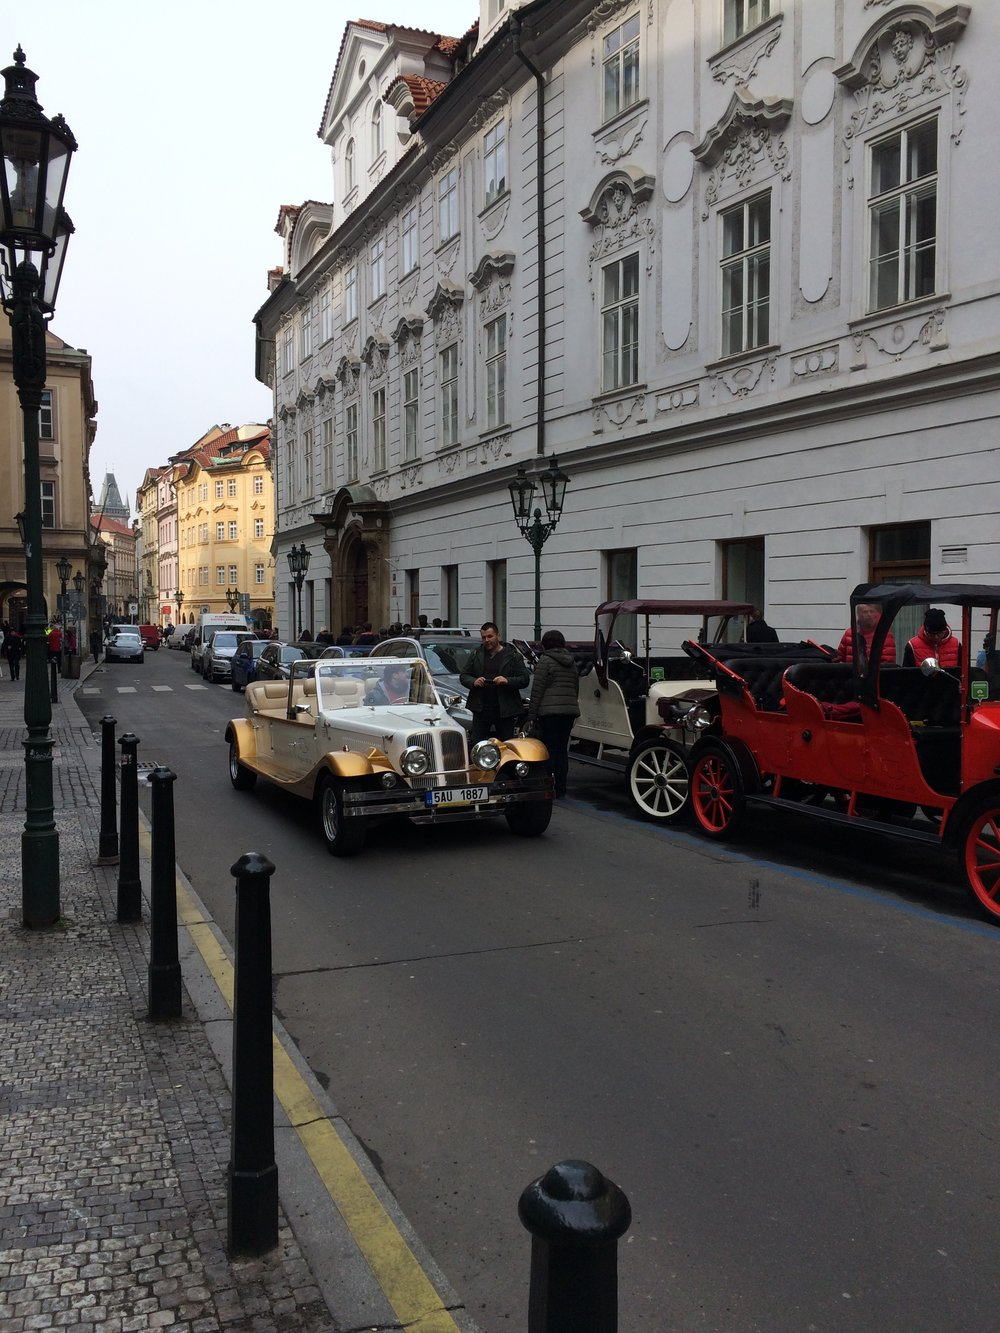 One of the old Prague cars that rumble through the city